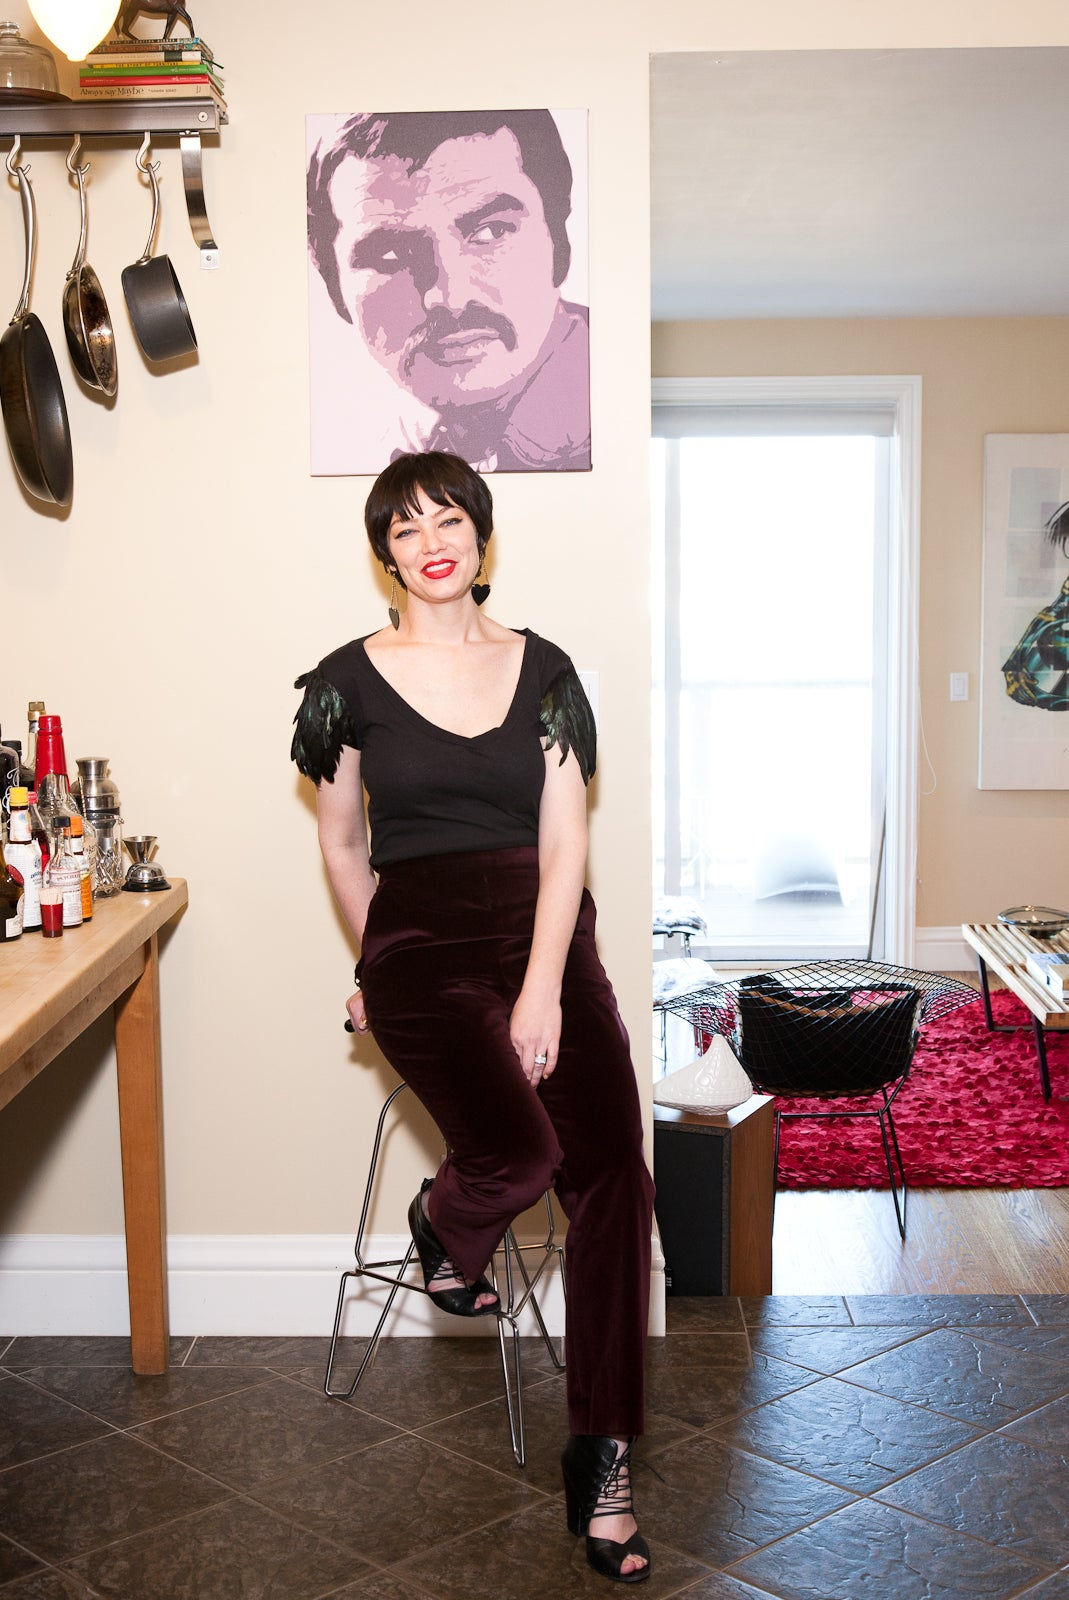 Inside the quirky cool digs of one of s f s master sketch artists